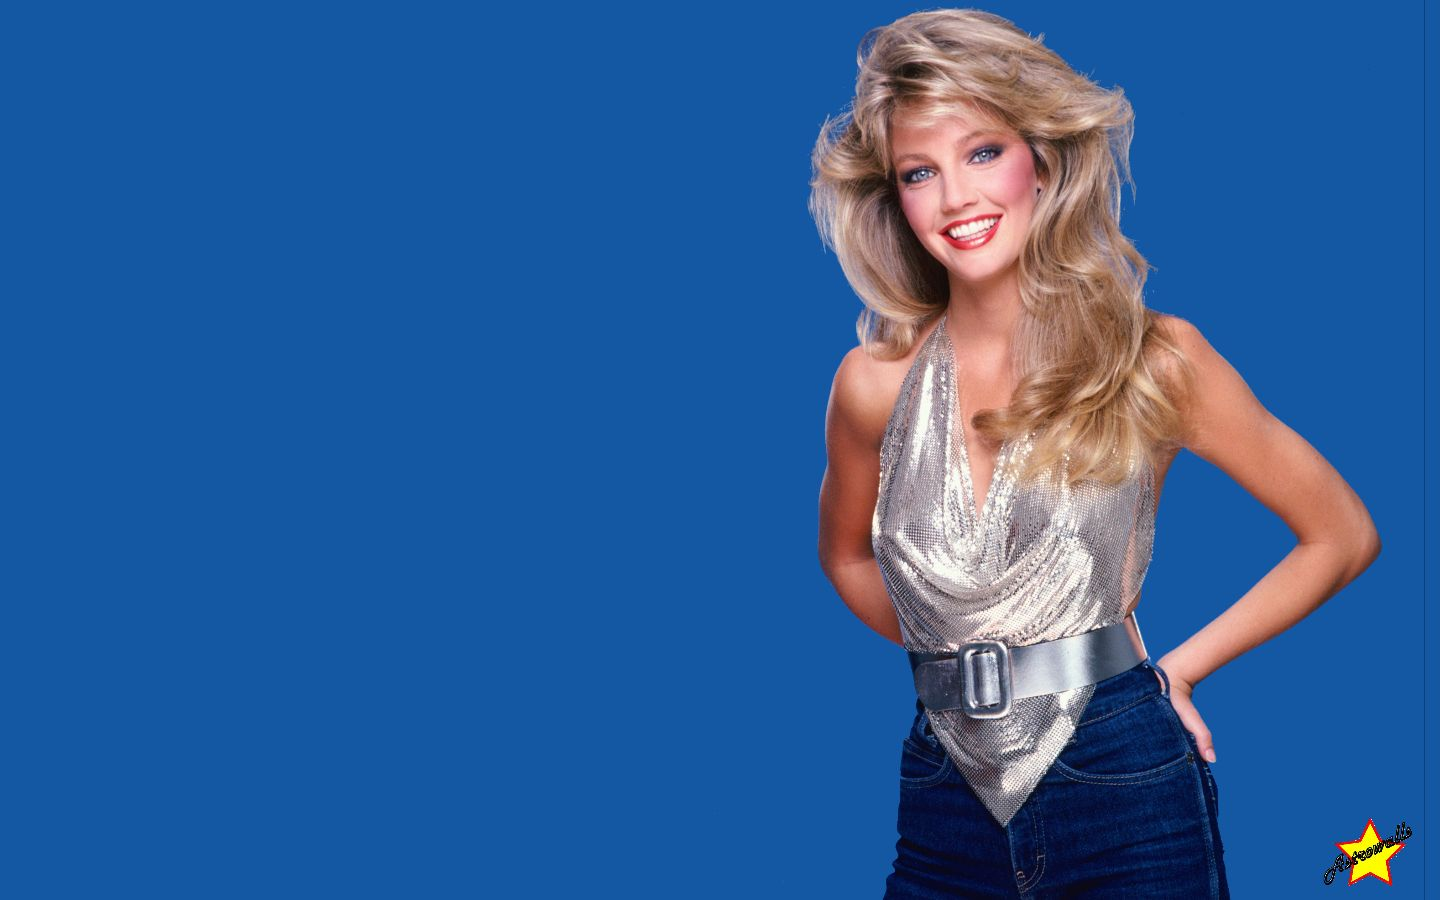 1440x900 - Heather Locklear Wallpapers 12